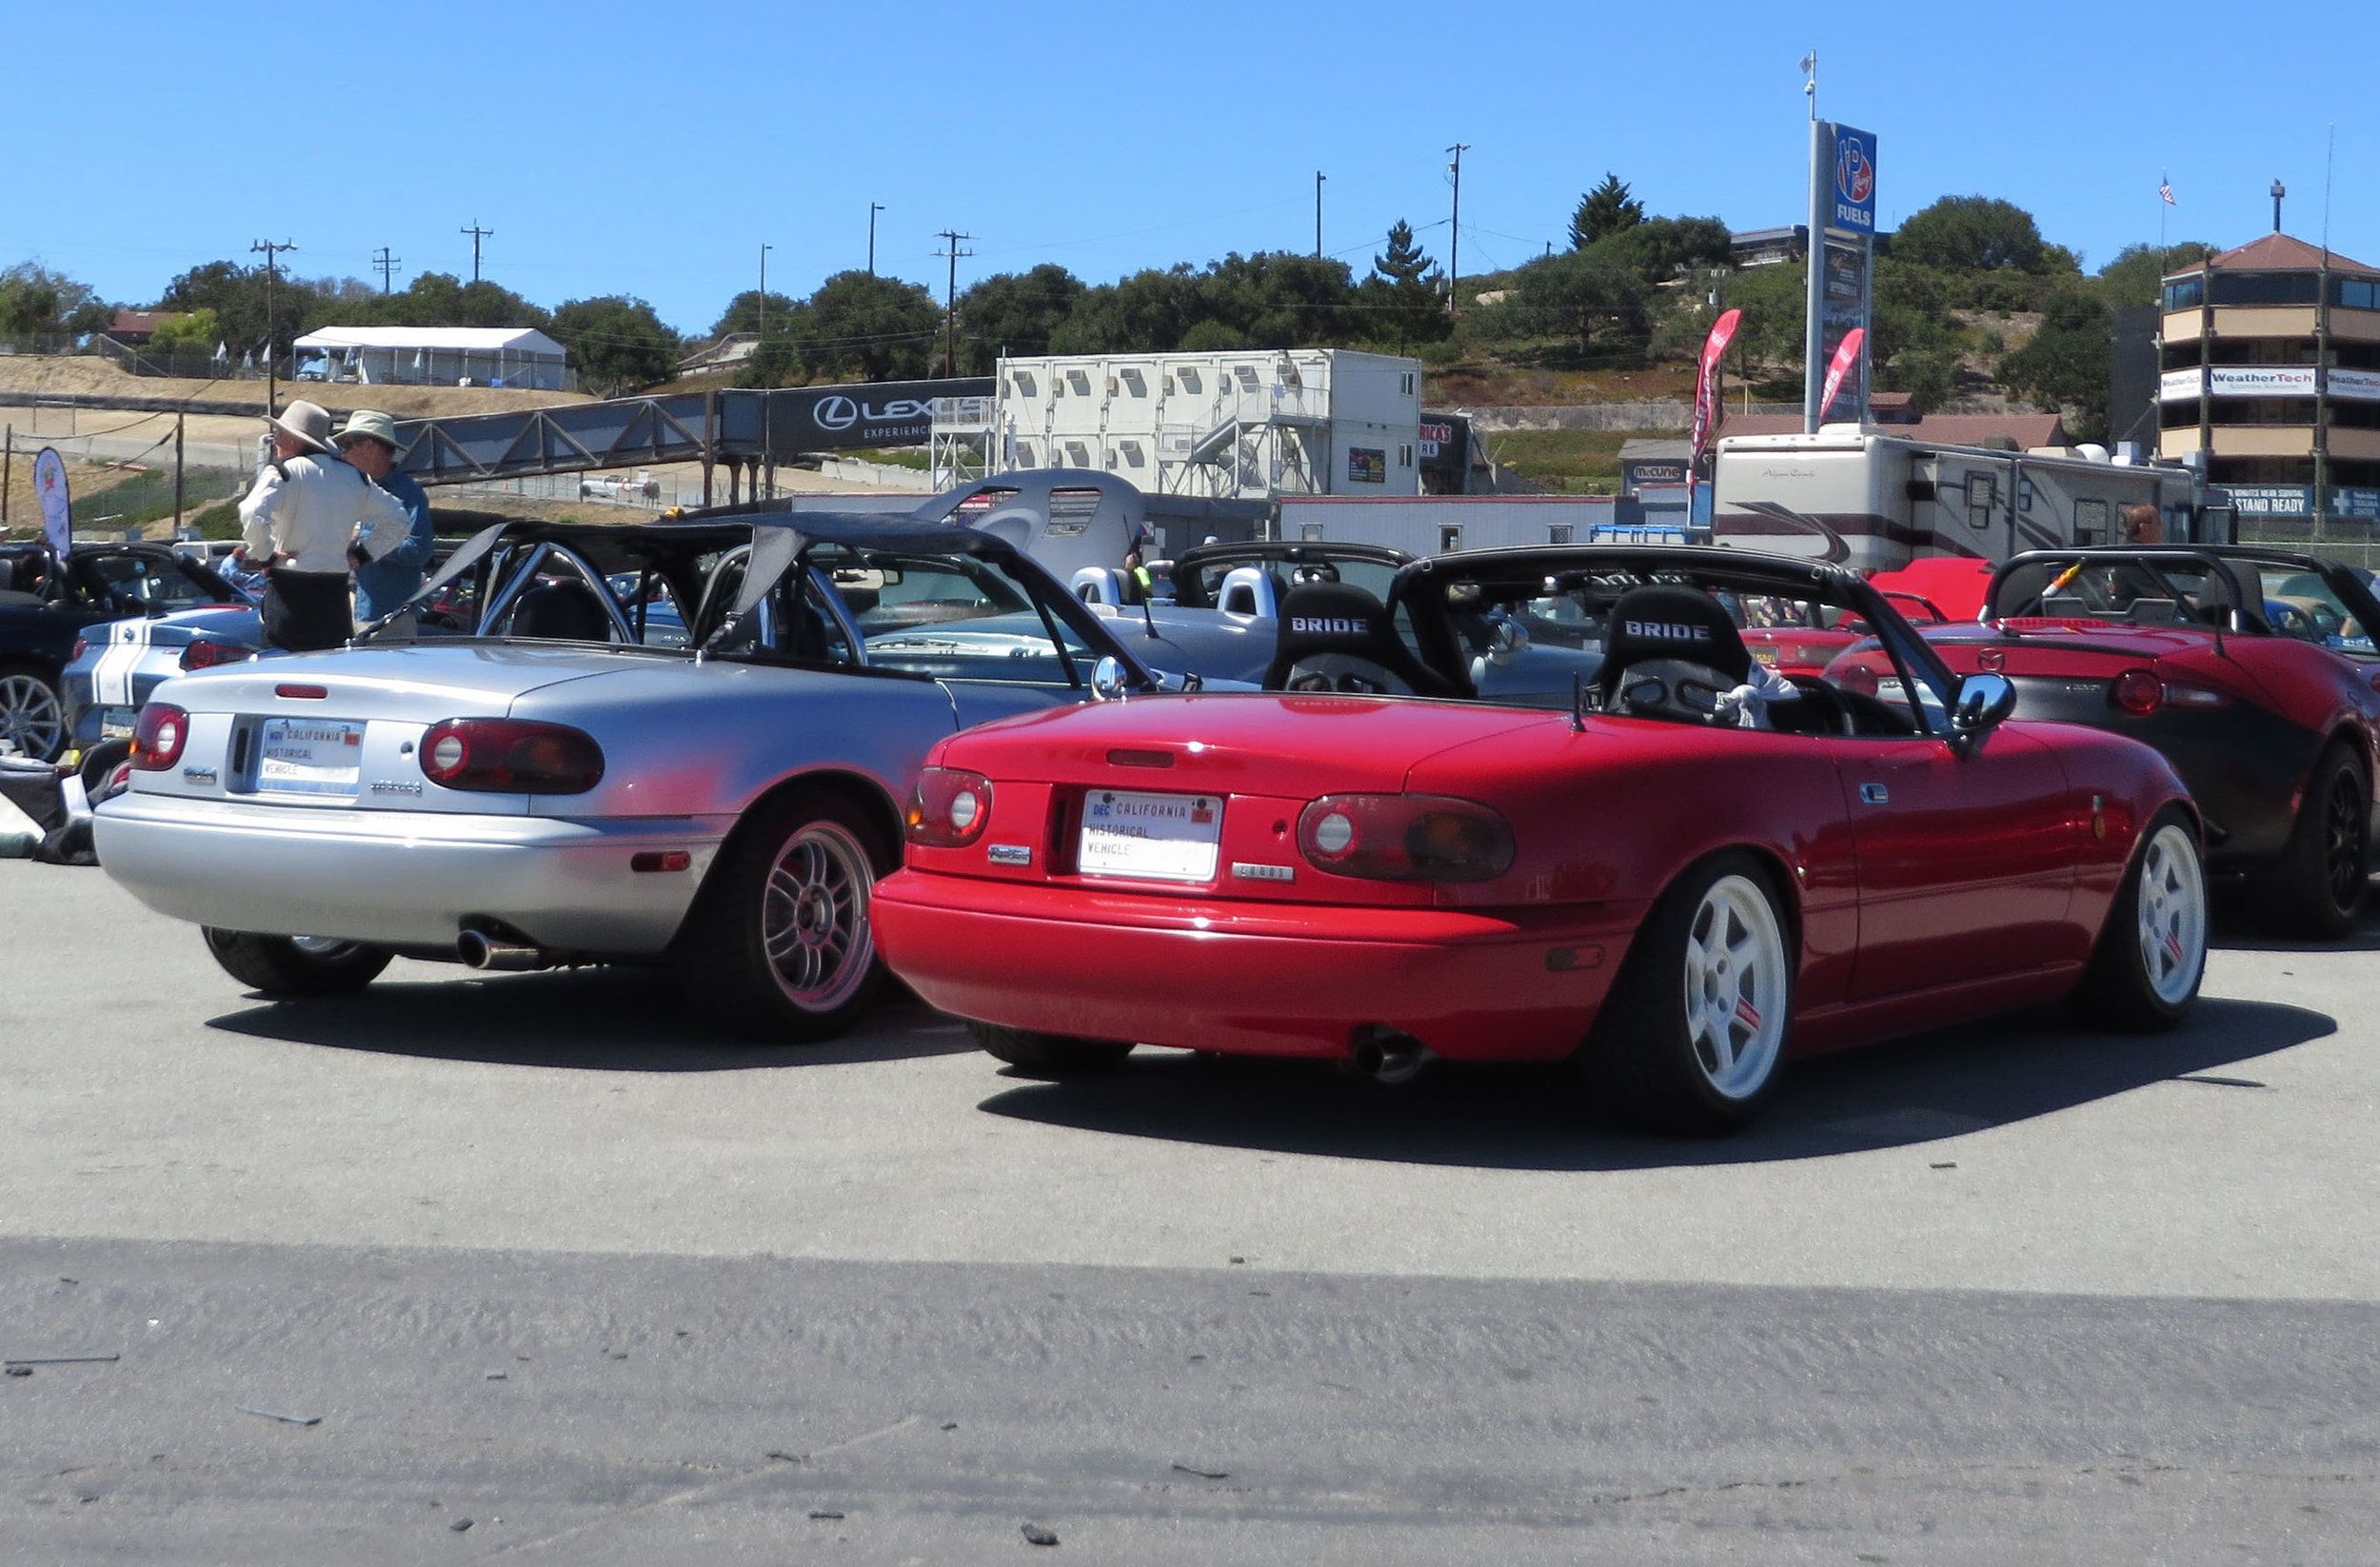 Historical MX-5s on display in the paddock.